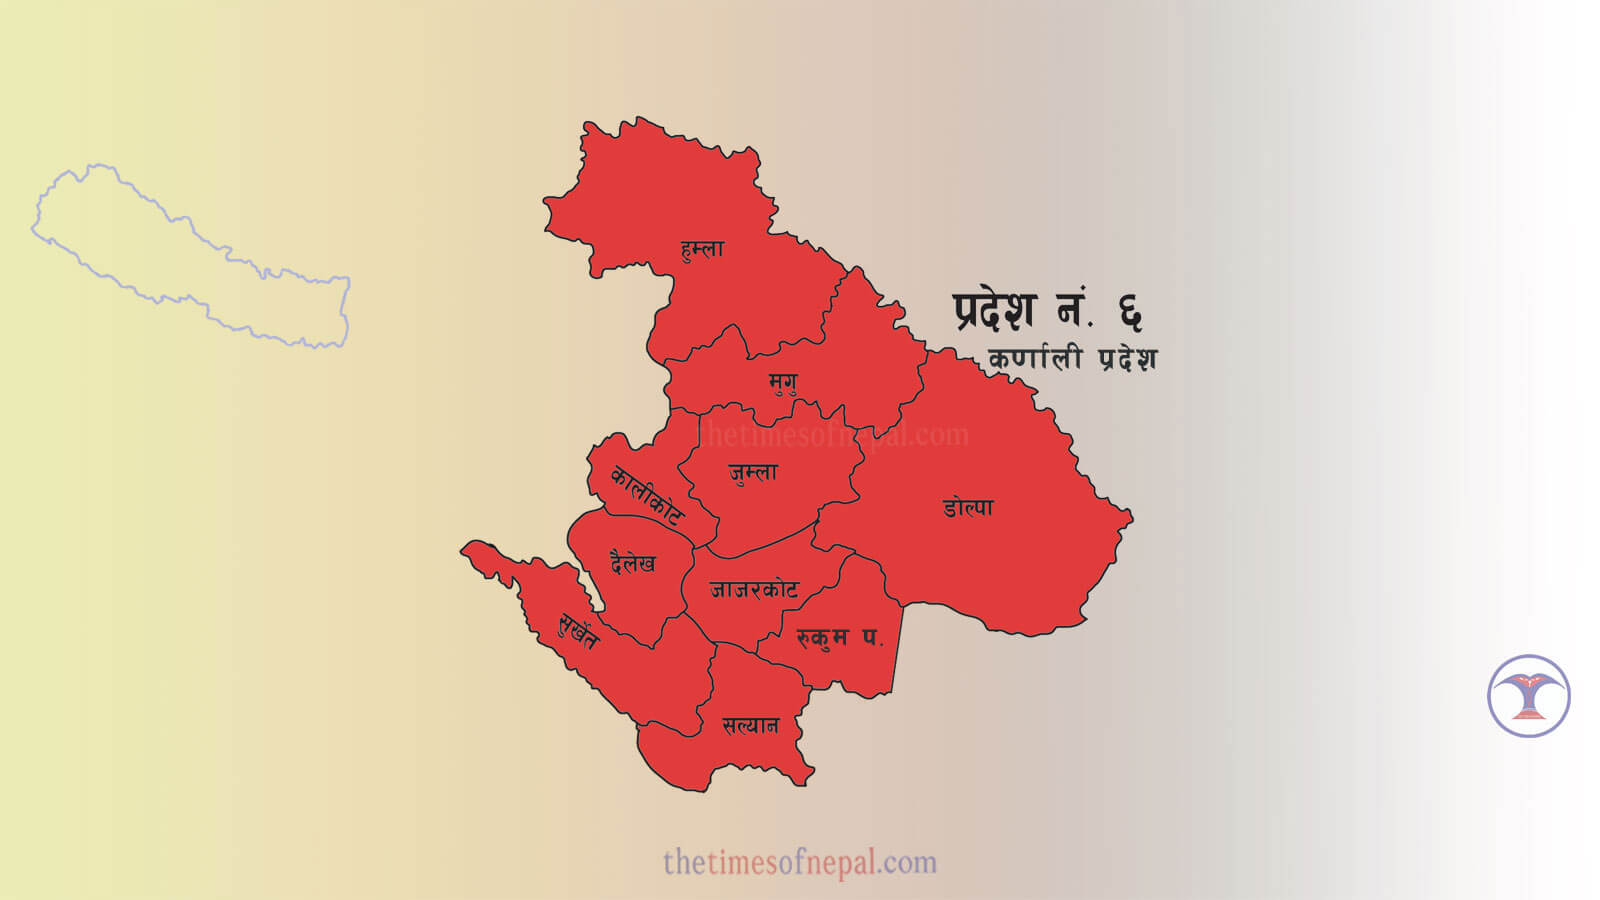 Karnali Pradesh - The Times Of Nepal